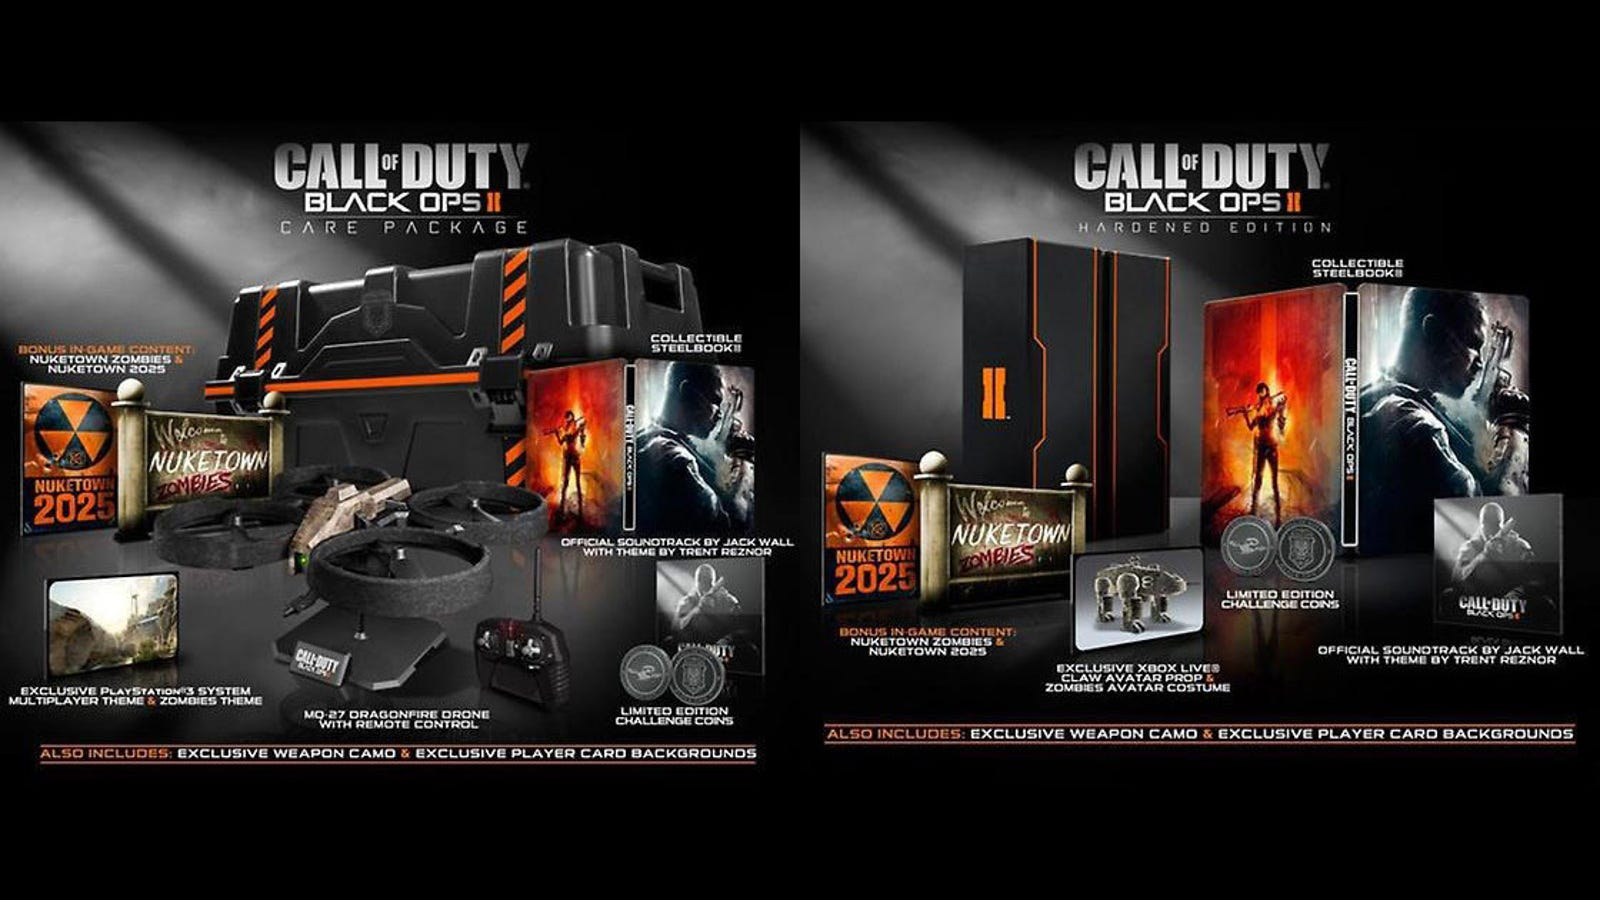 Collectorsedition. Org » call of duty black ops ii care package.